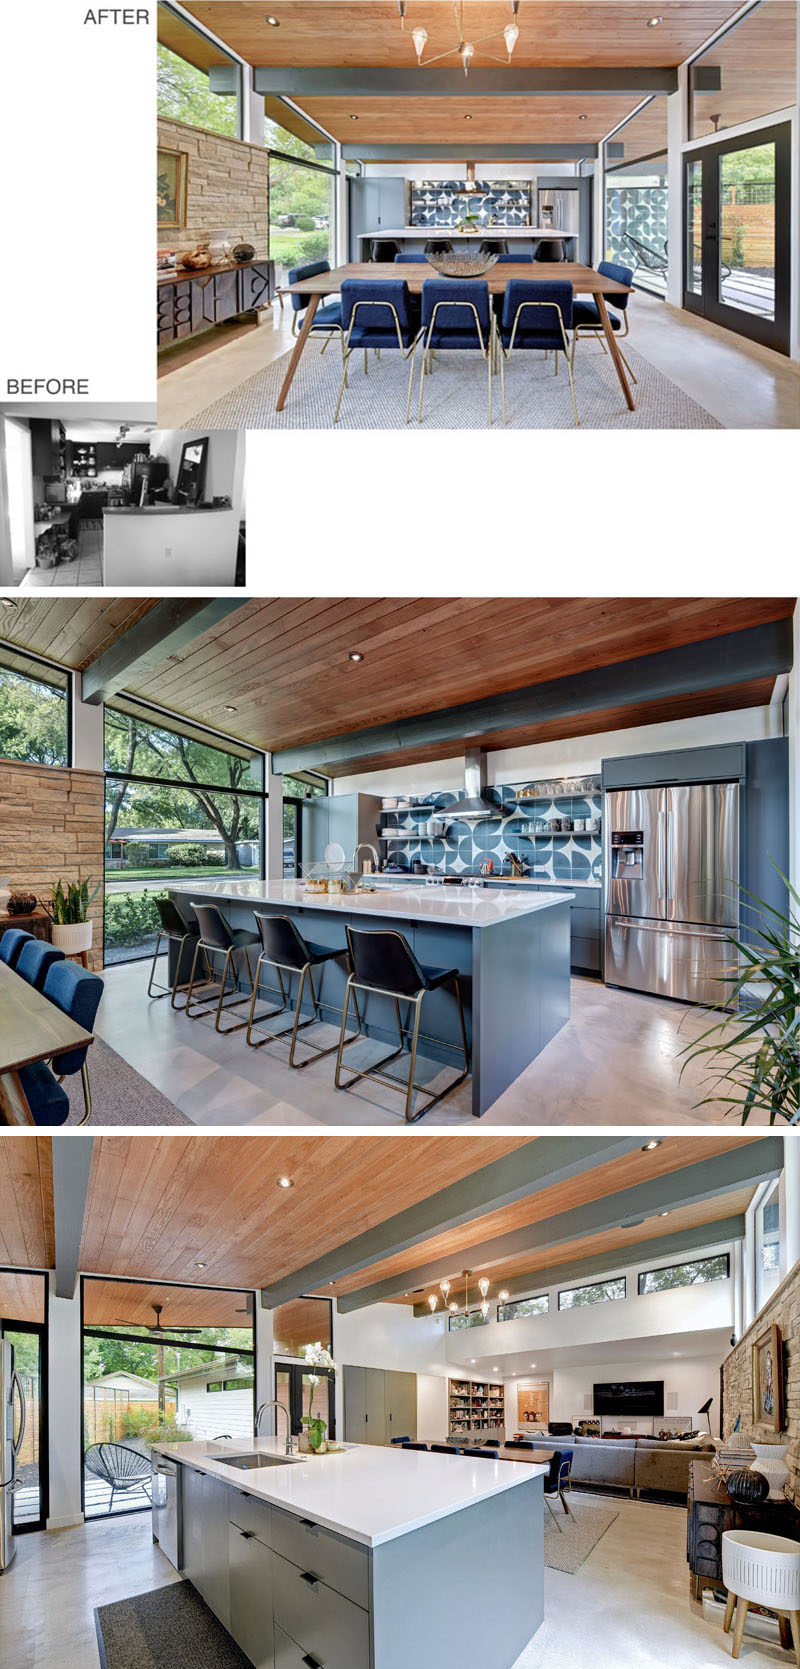 BEFORE + AFTER - As part of the remodel of this mid-century house, the kitchen was opened up, and large picture windows were added on either side. #KitchenDesign #ContemporaryKitchen #KitchenRemodel